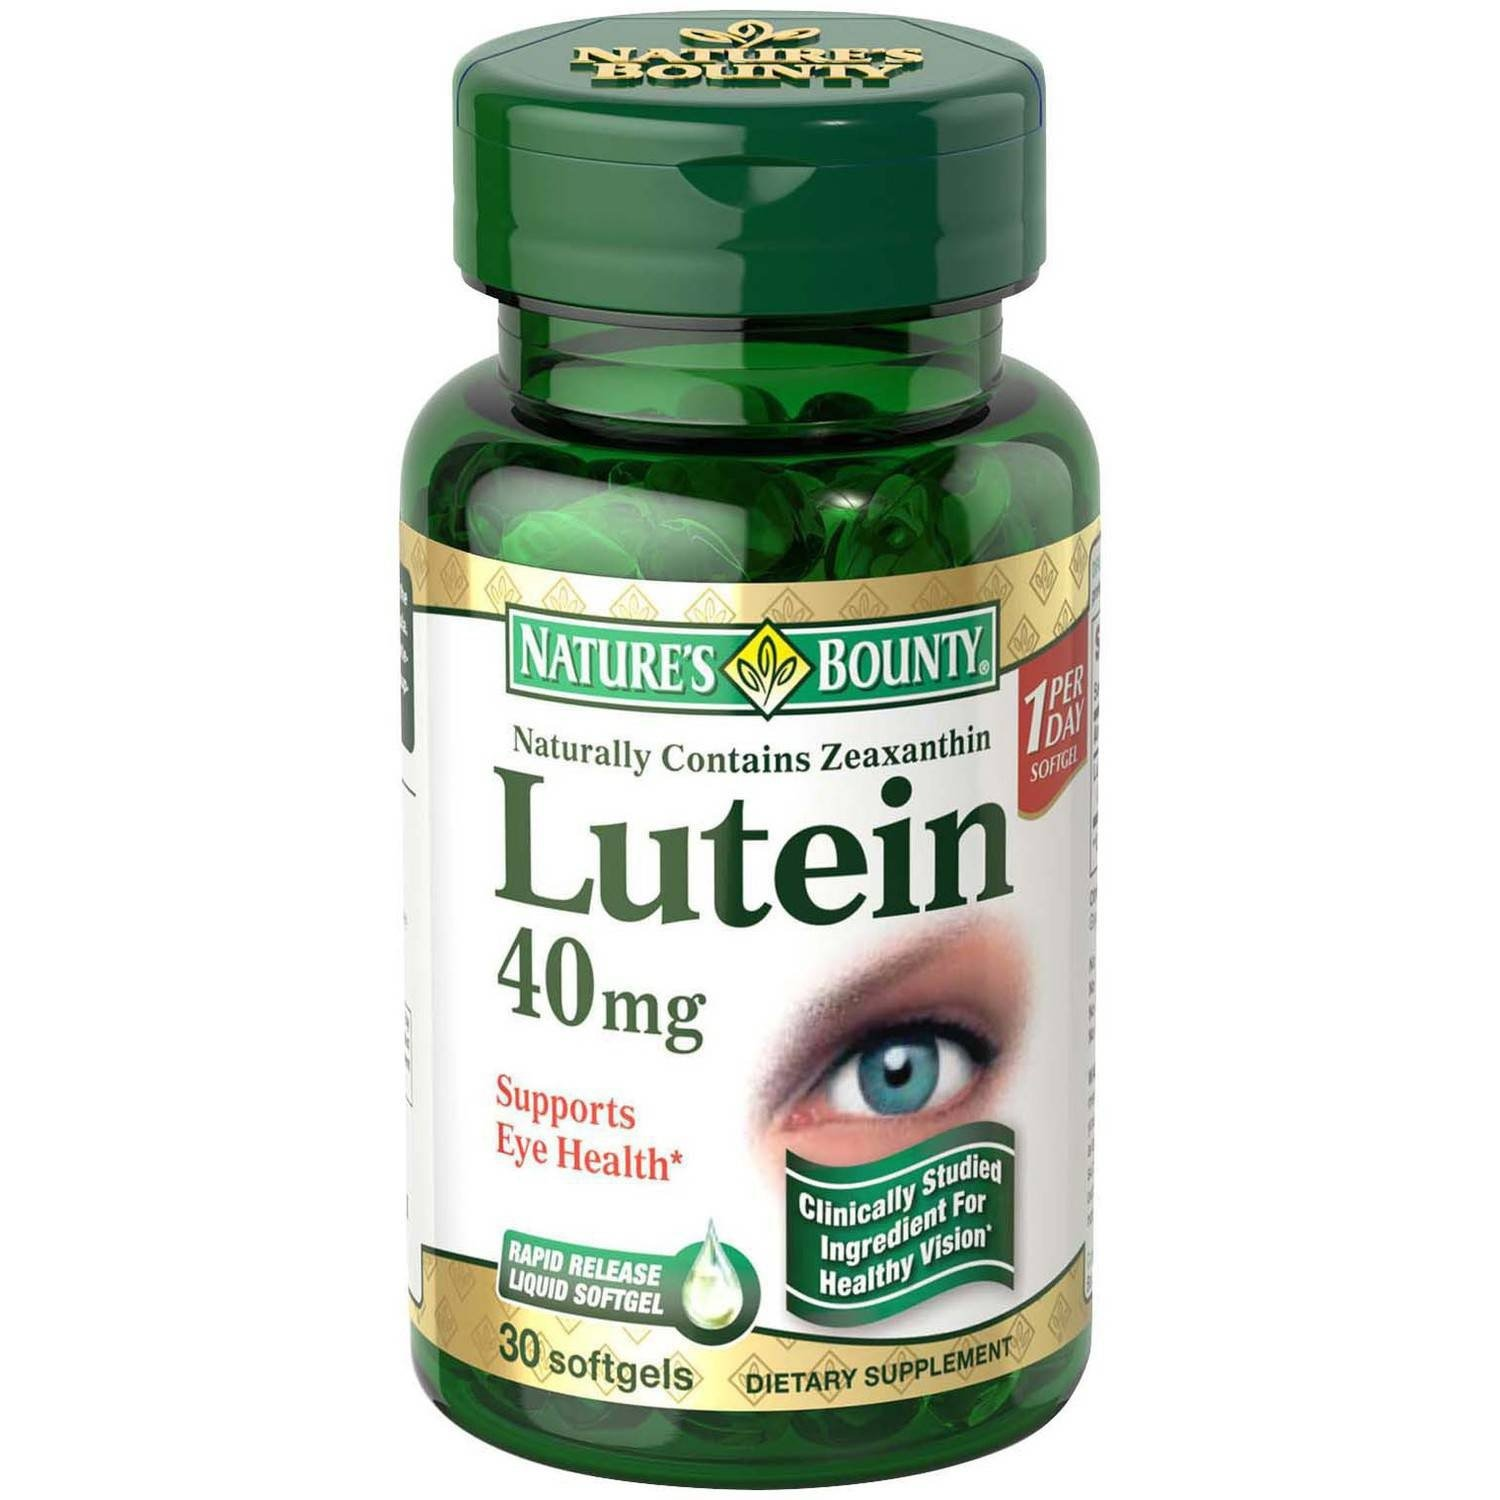 Nature's Bounty Lutein Dietary Supplement Softgels, 40mg, 30 count (6 Pack)